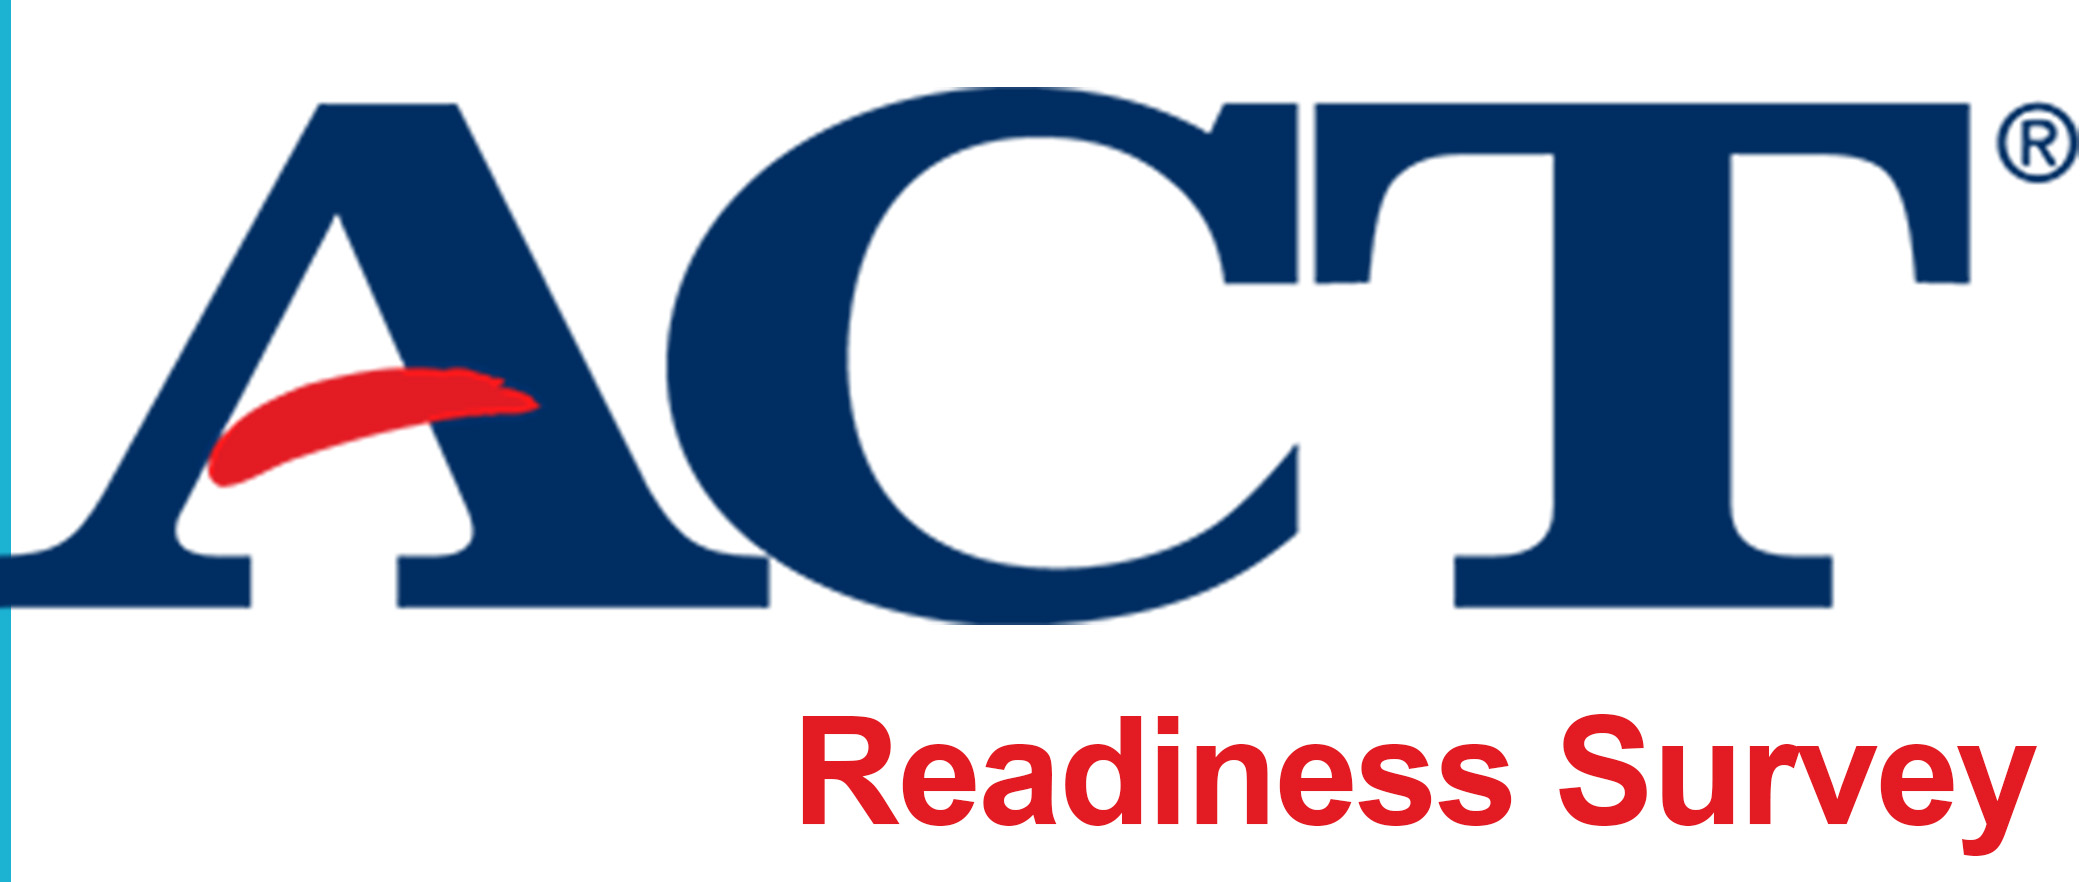 ACT Readiness Survey